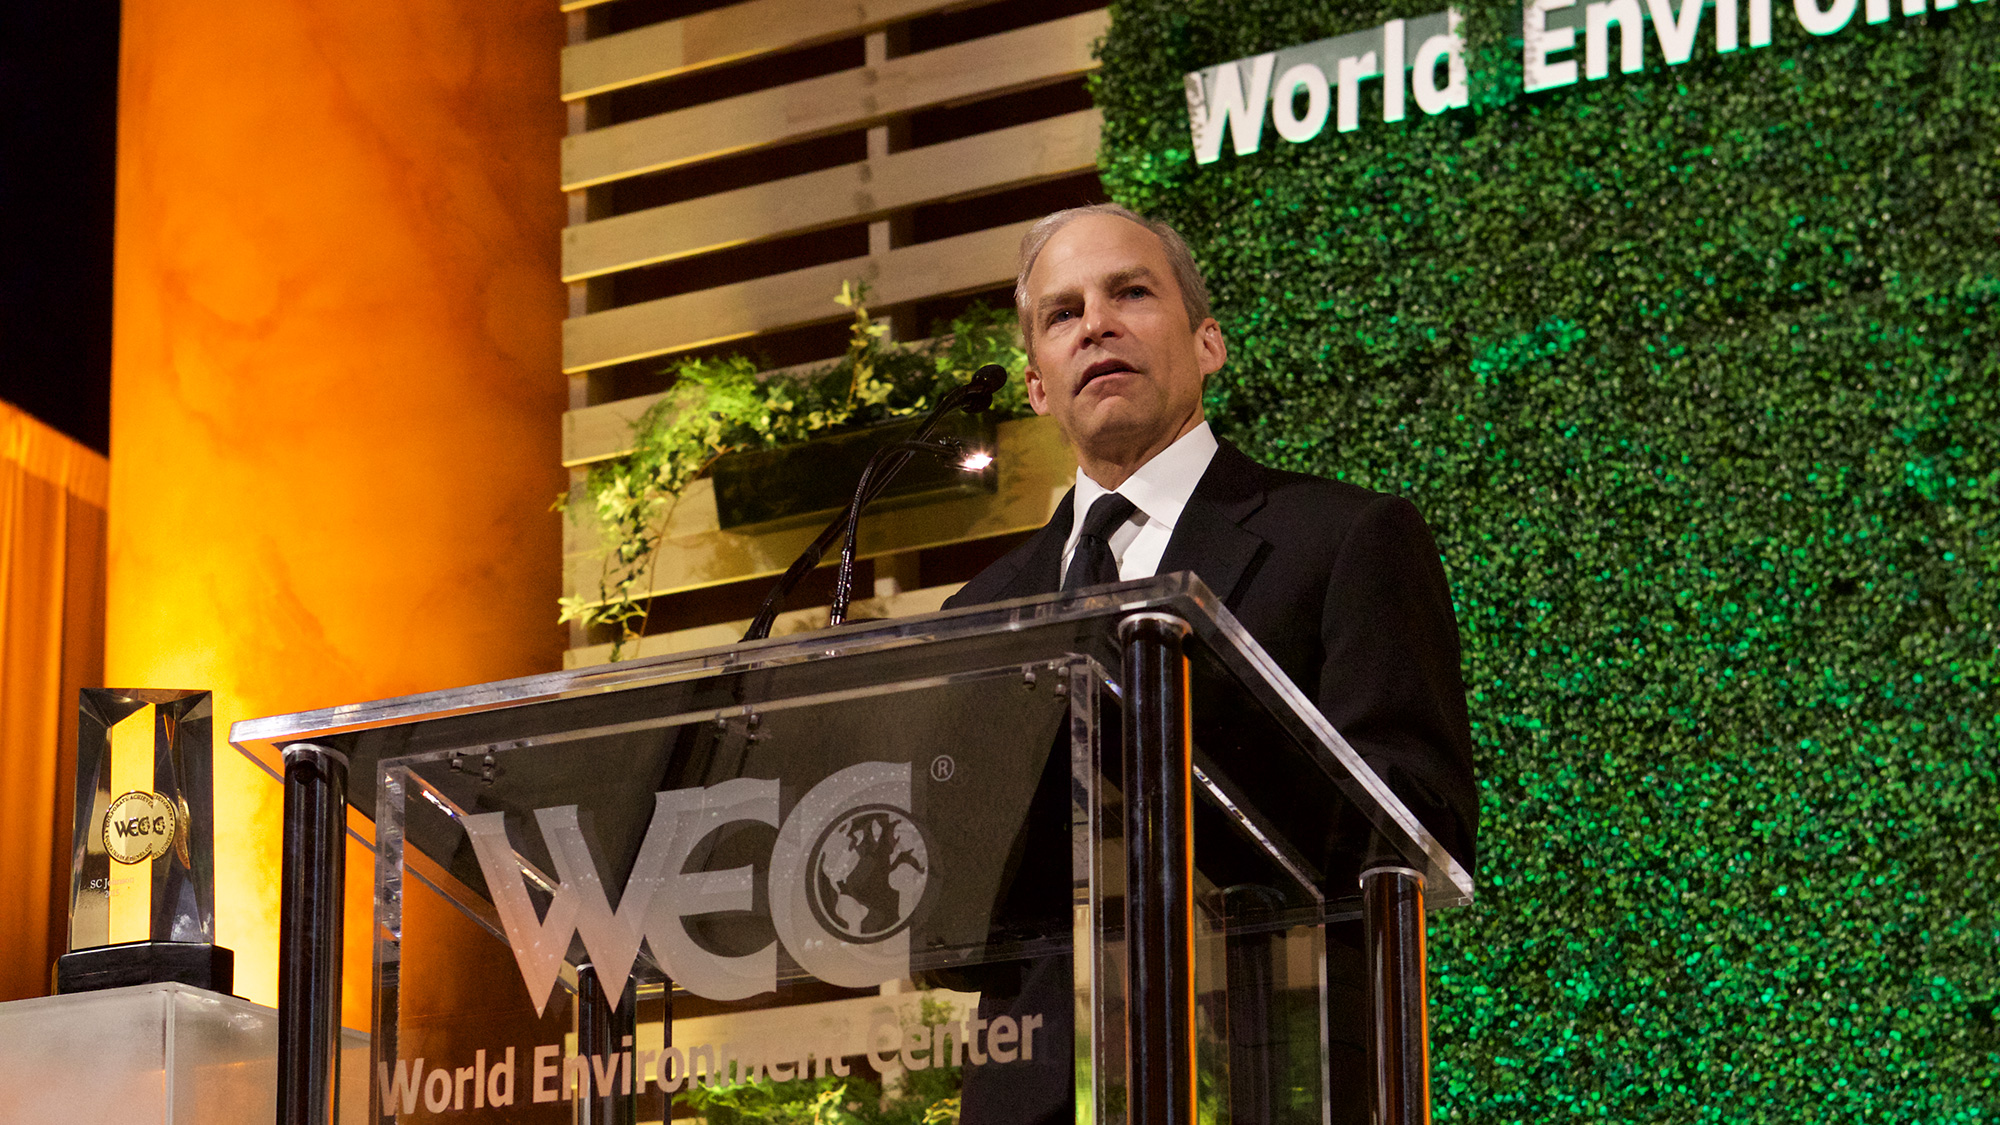 H Fisk Johnson accepts World Environment Center's 2015 Gold Medal Award for sustainable development achievements